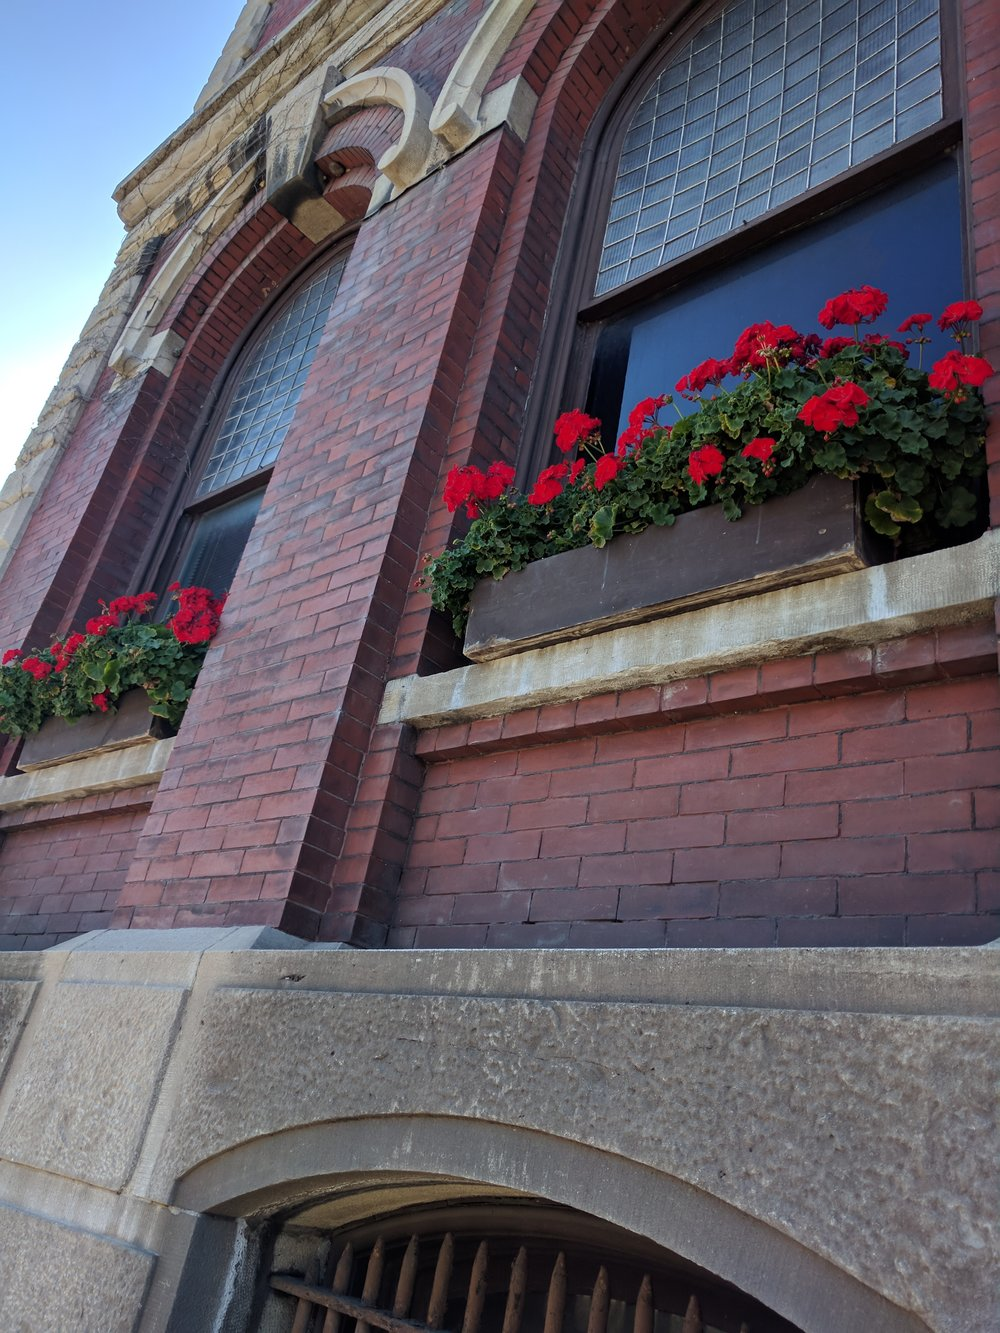 Flower boxes adorned the buildings.